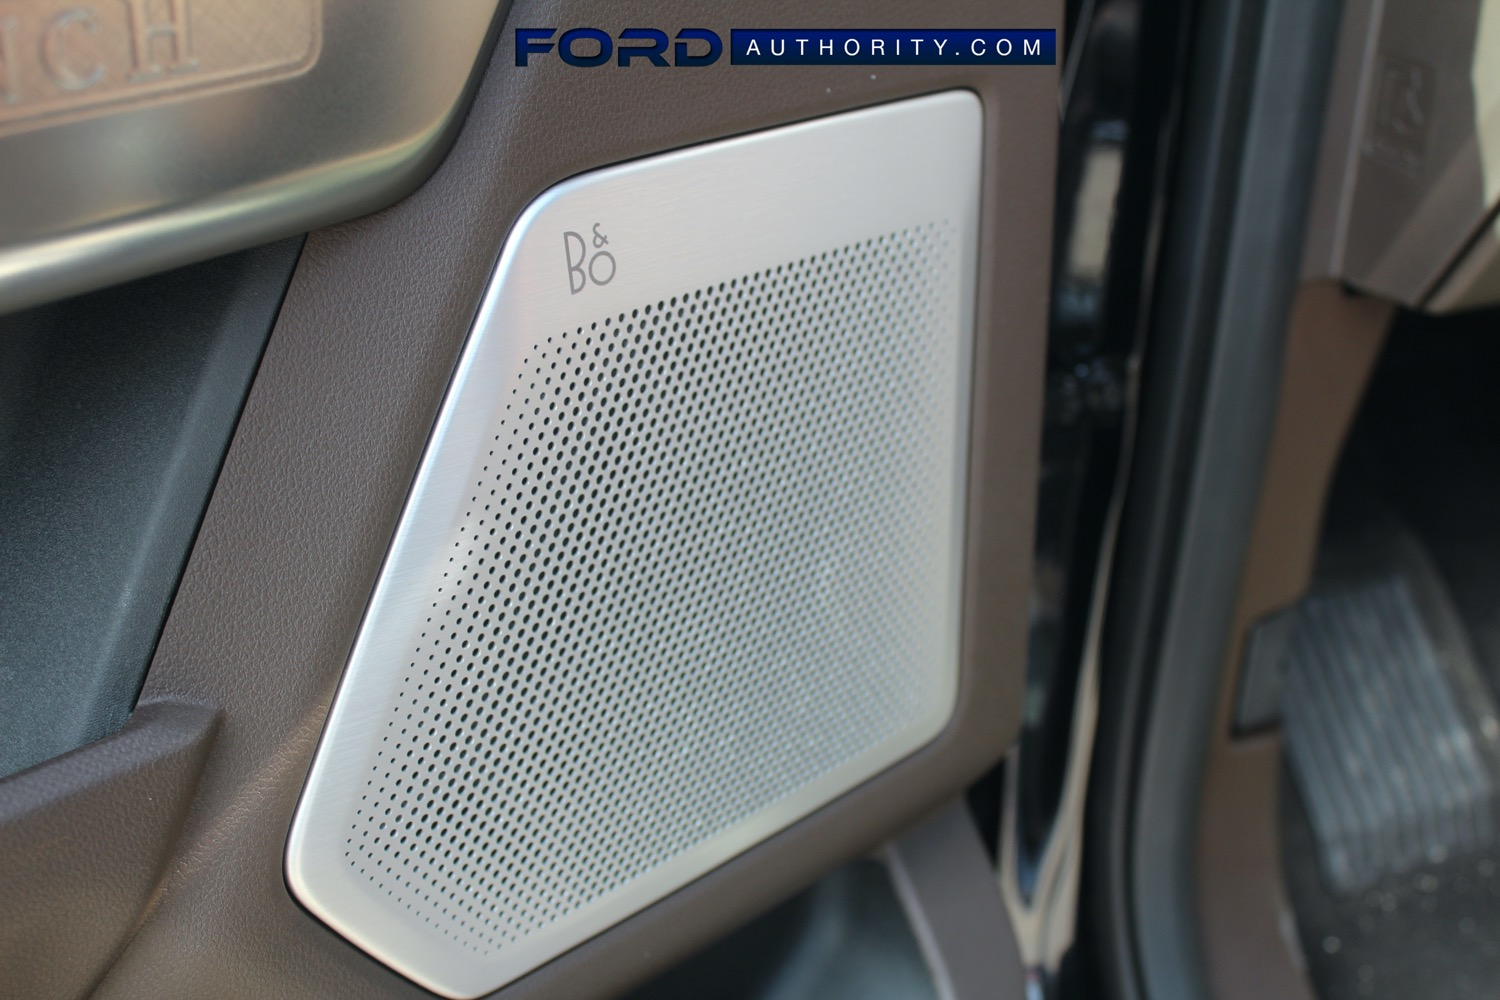 2021-Ford-F-150-King-Ranch-Interior-Front-Row-016-BO-speaker-grille-driver-side-door-panel.jpg